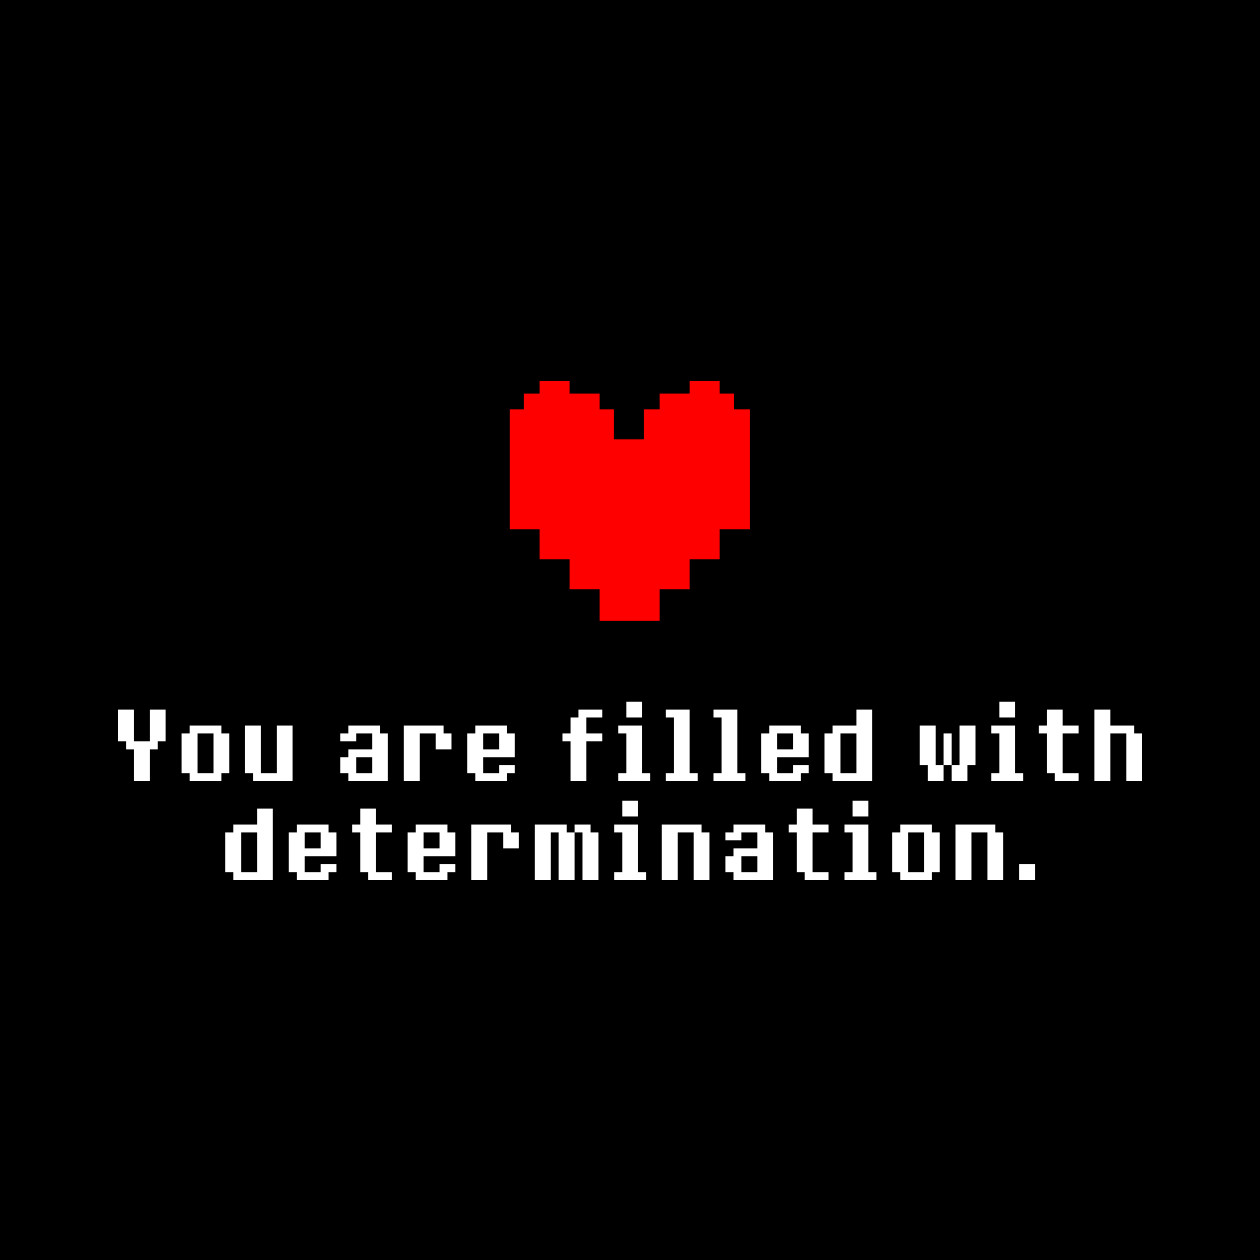 Halsey Wallpaper Quotes Undertale Determination Heart Undertale Mug Teepublic